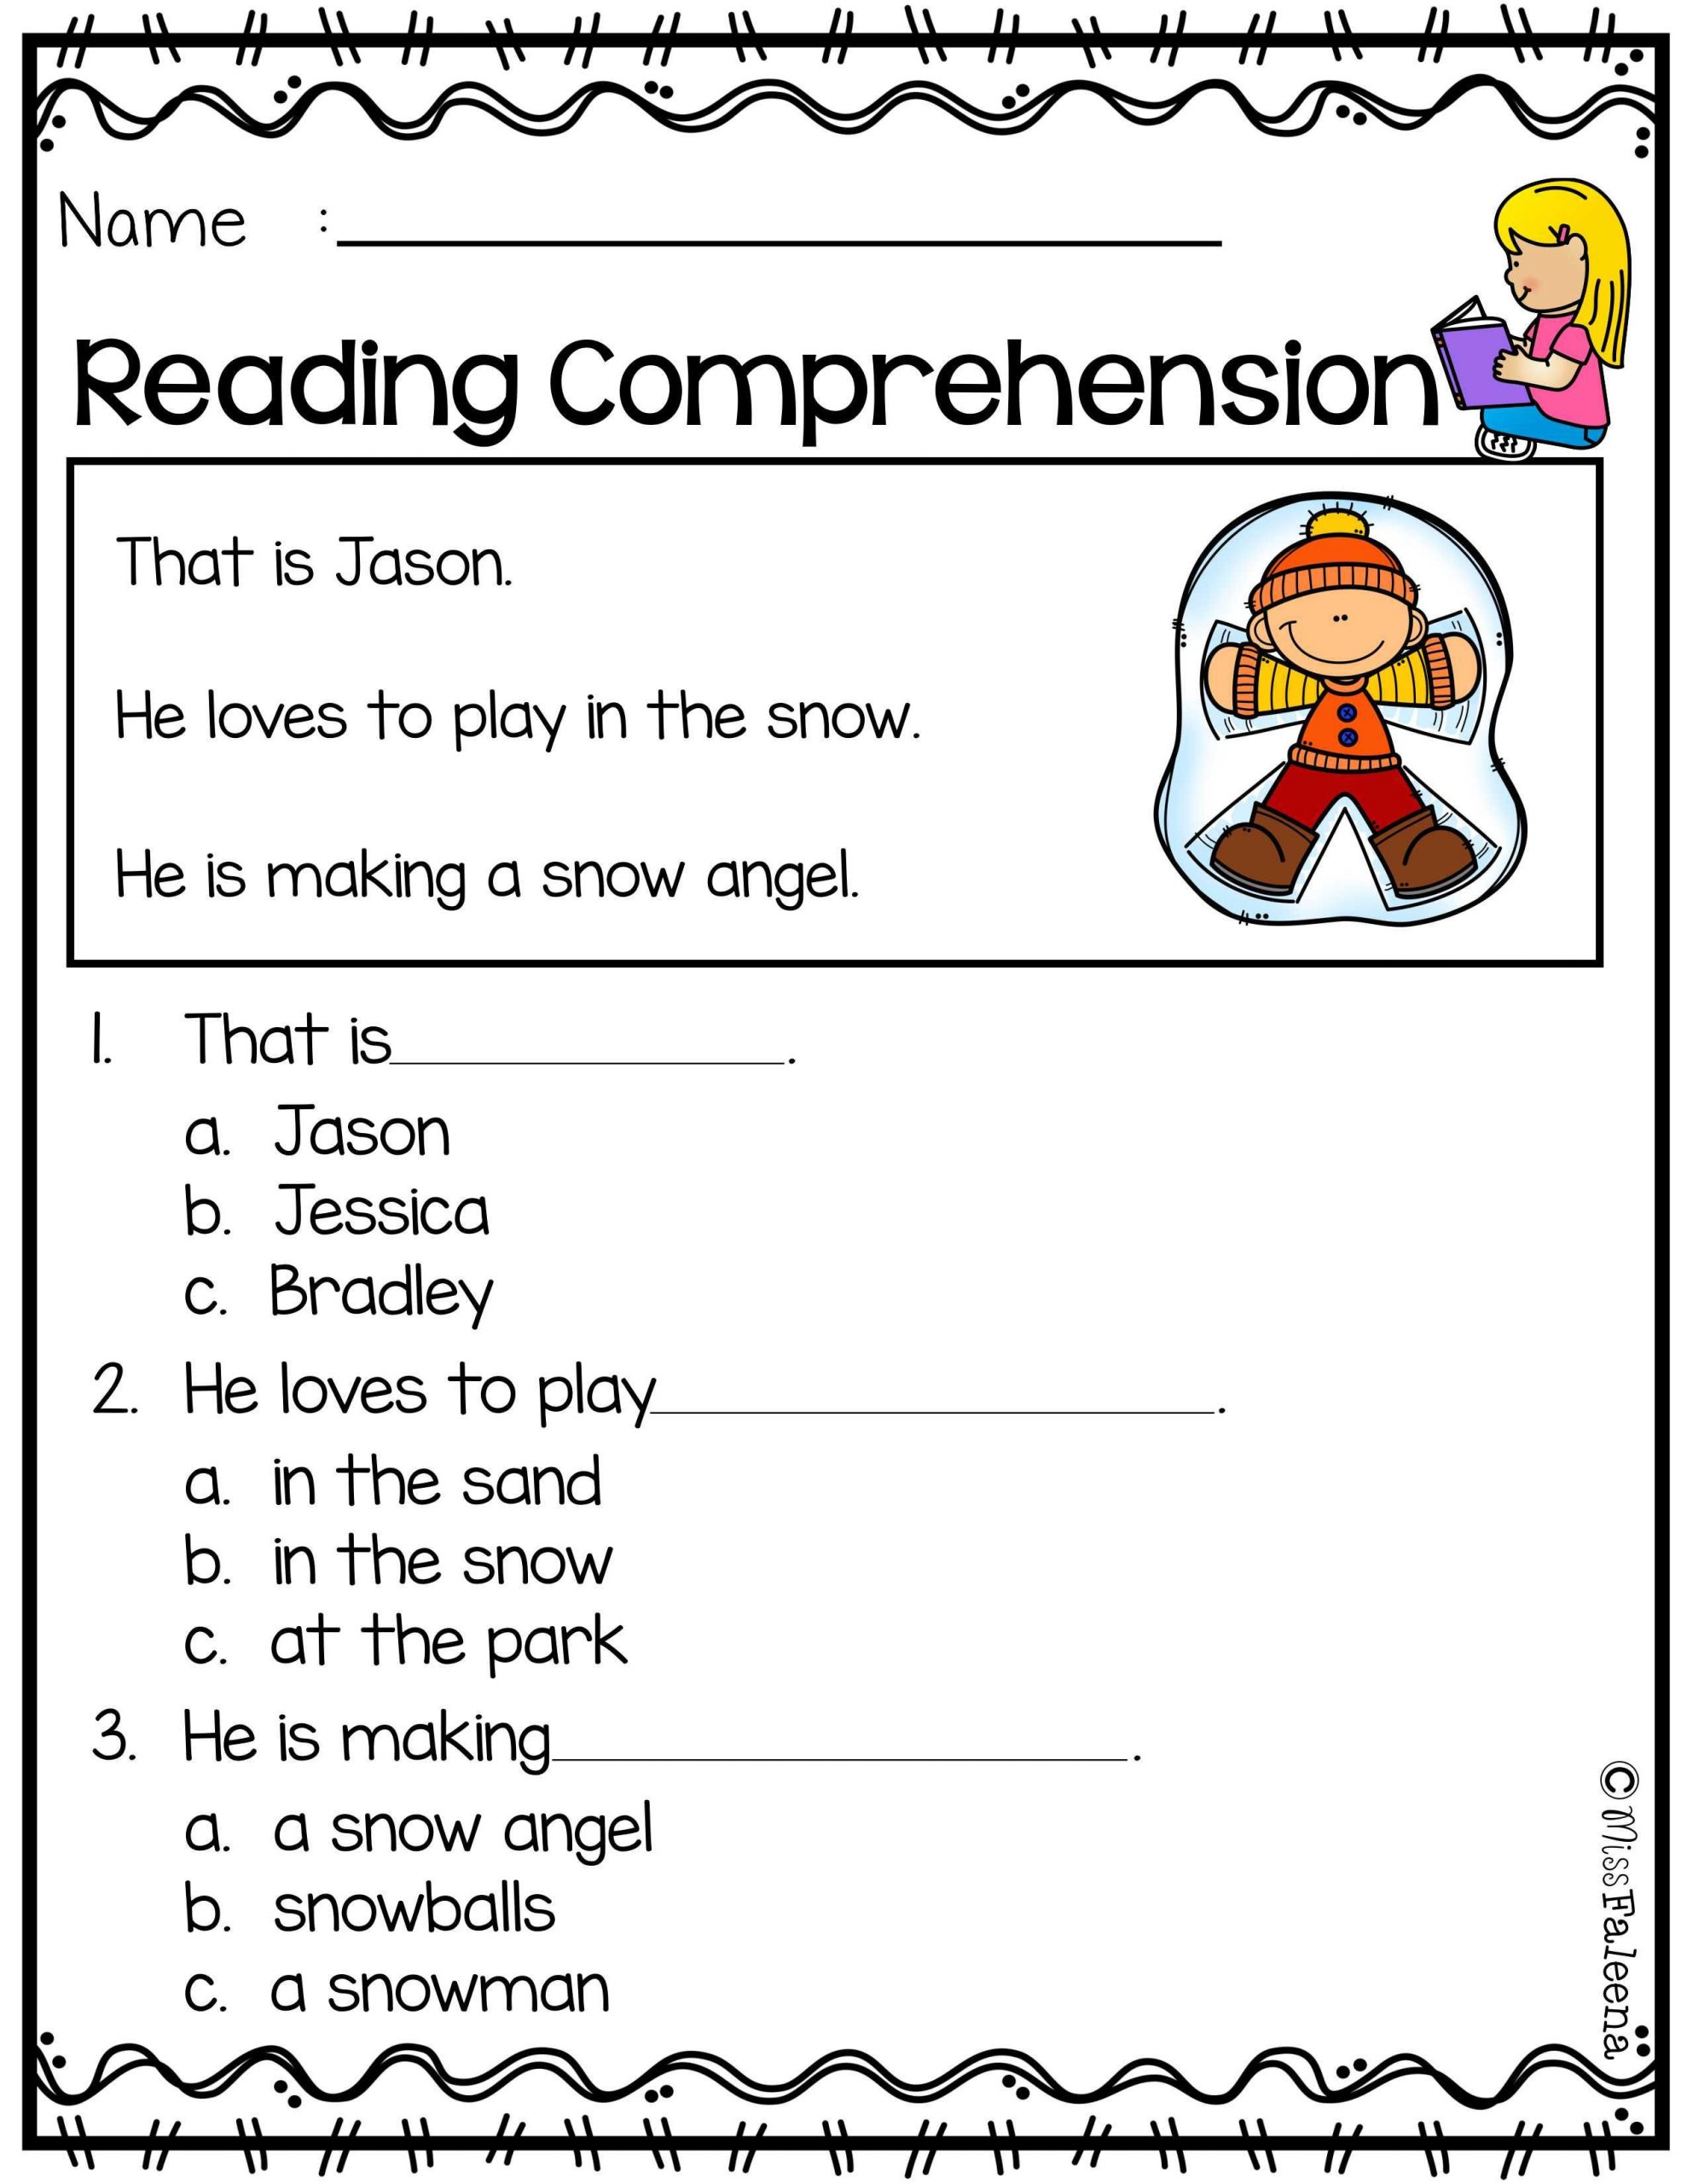 Reading Comprehension Worksheets Kindergarten Free Reading Prehension